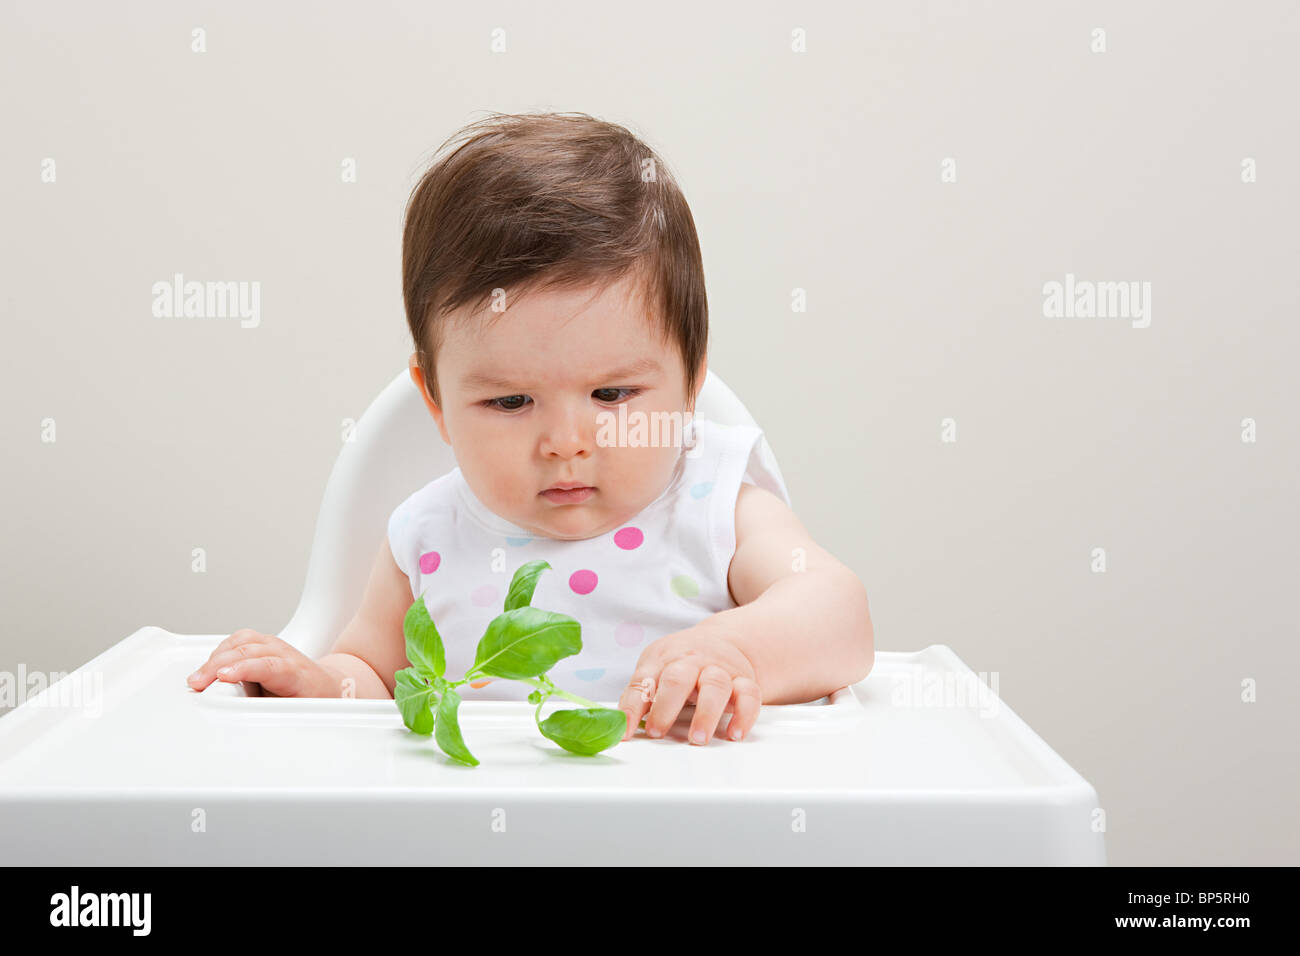 Baby boy looking at basil leaf - Stock Image